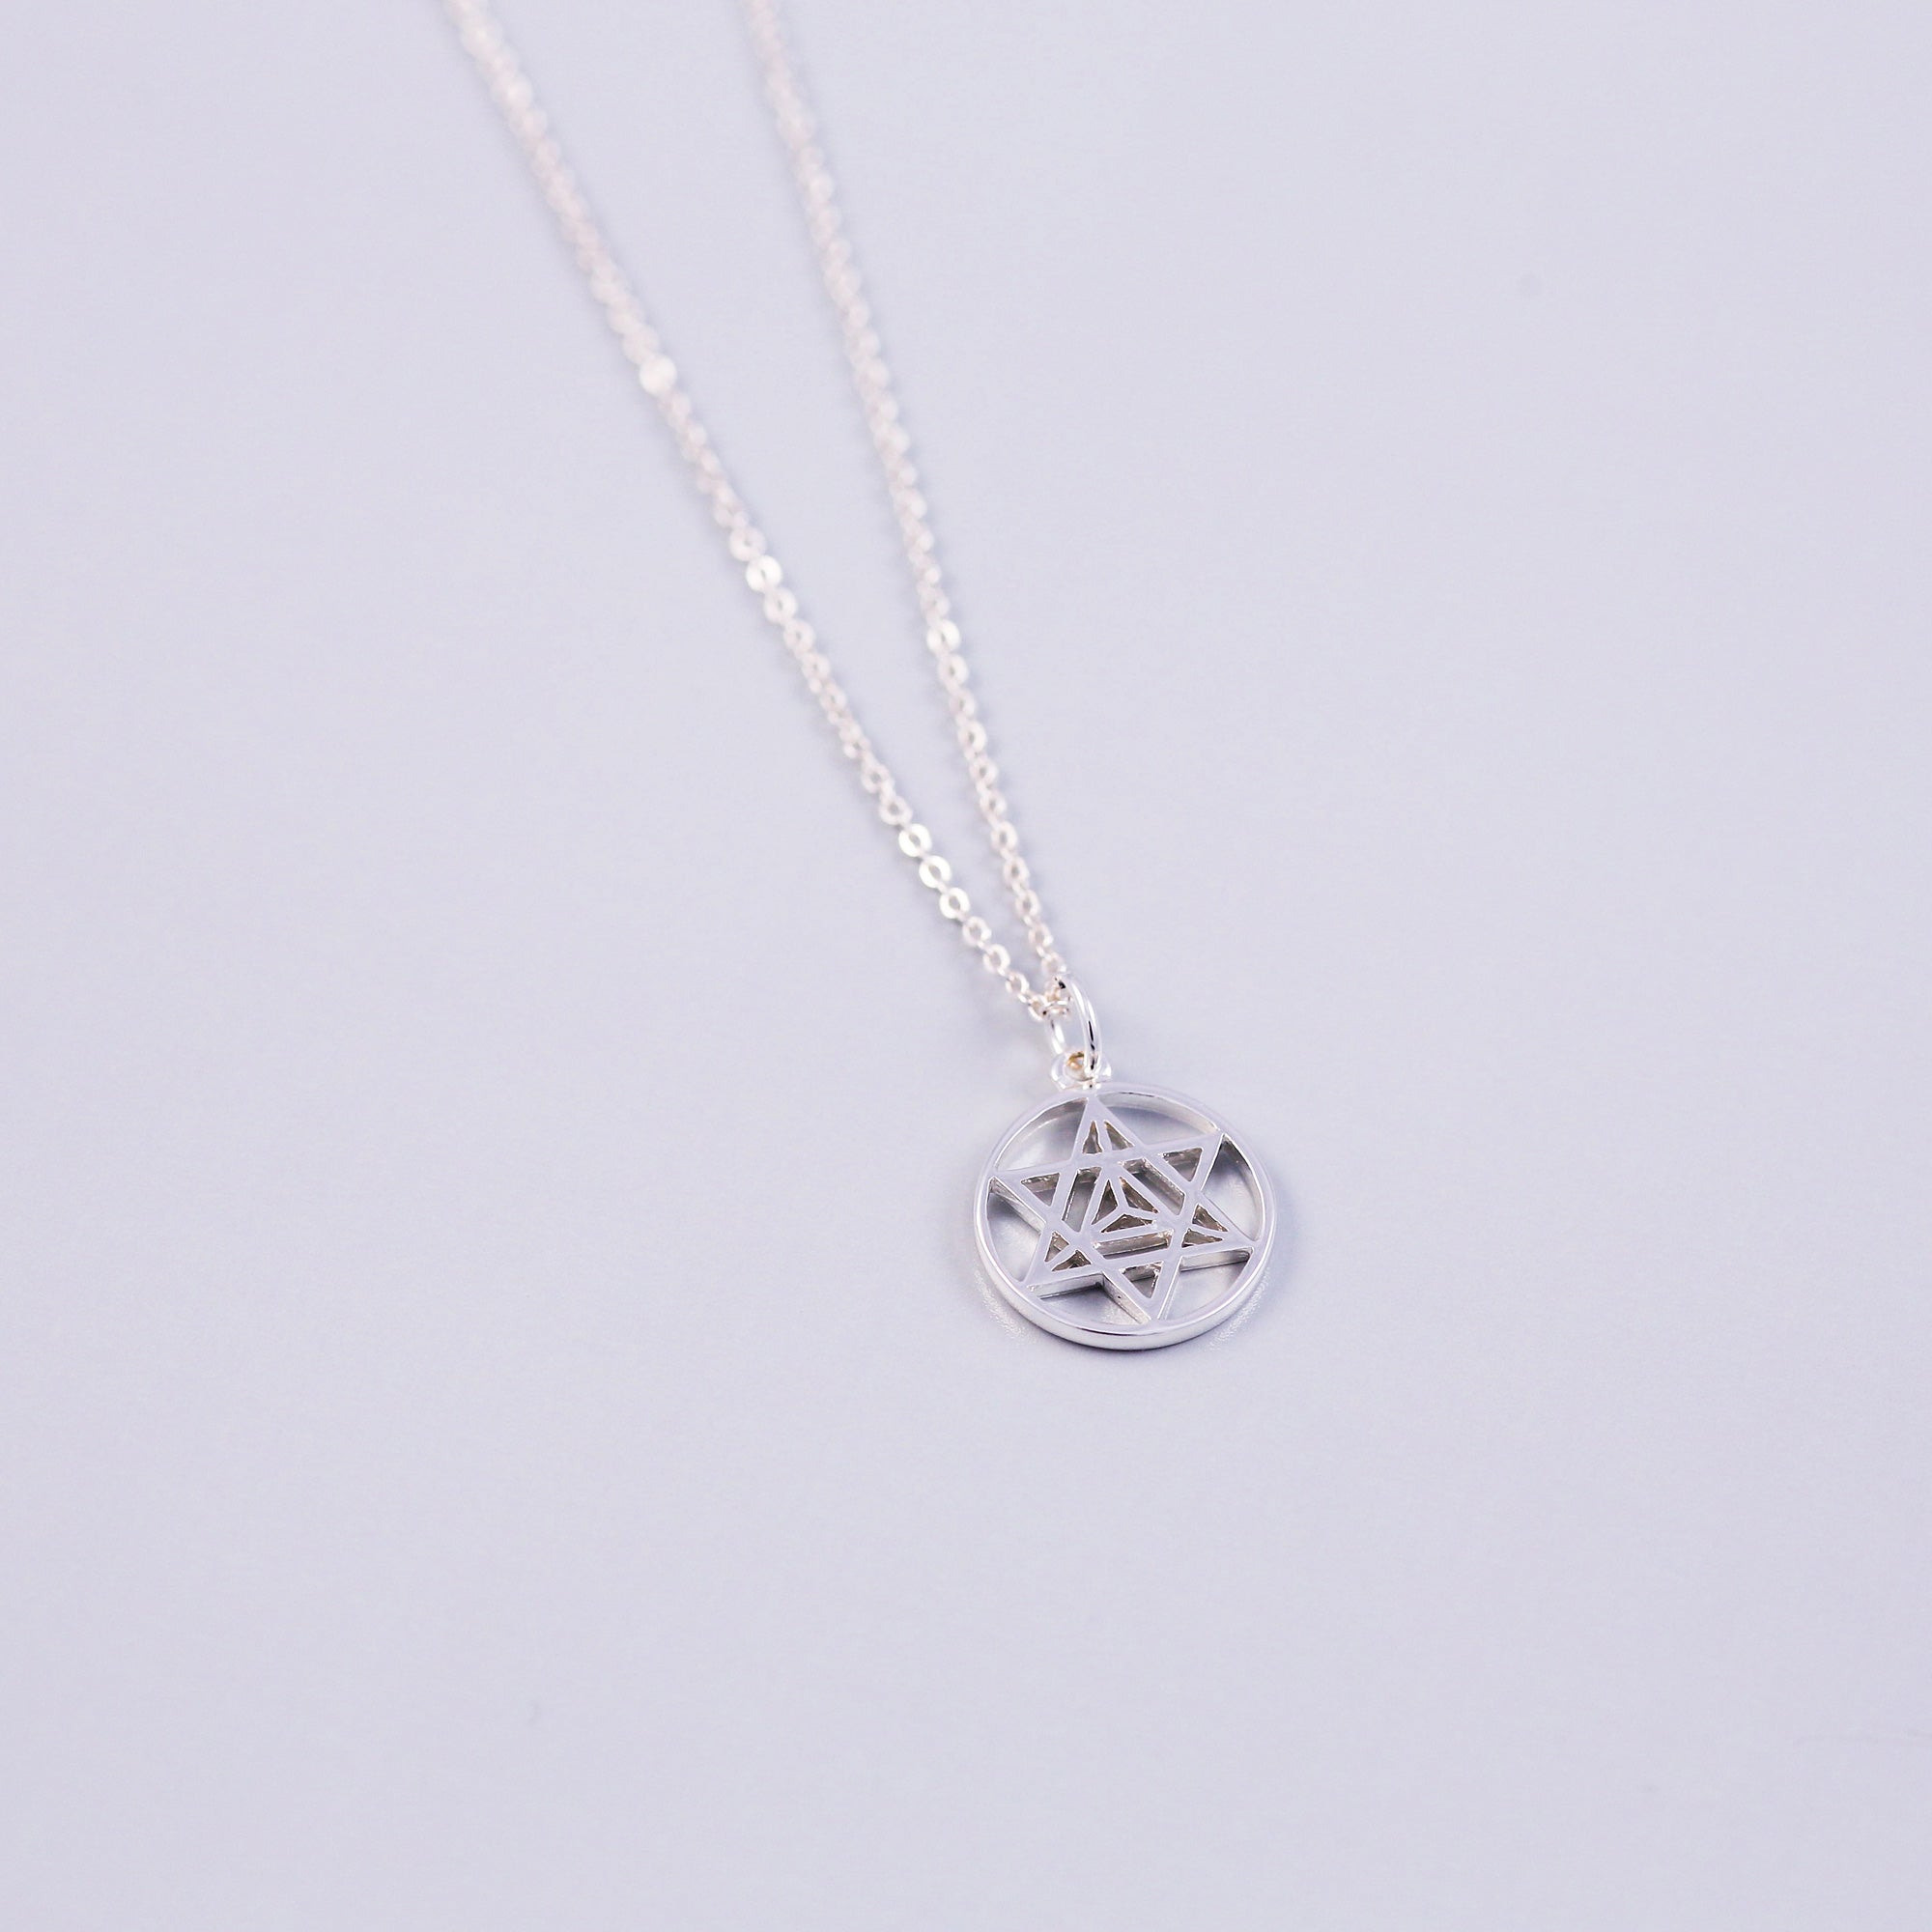 The Four Elements Earth Air Fire Water | Pentagram Charm Necklace | Silver